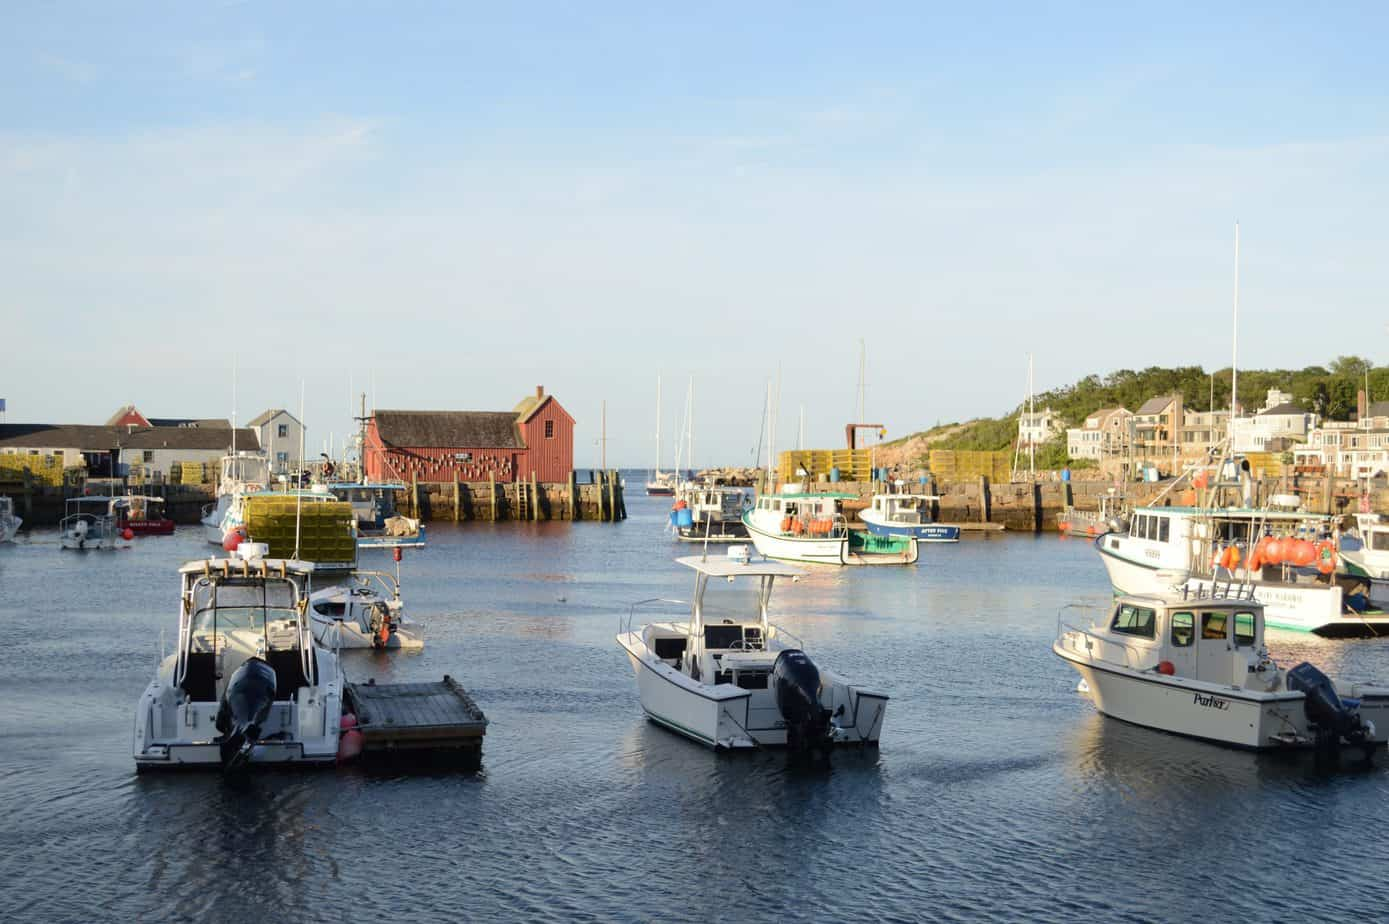 Boats on the water; Things to do in Rockport MA